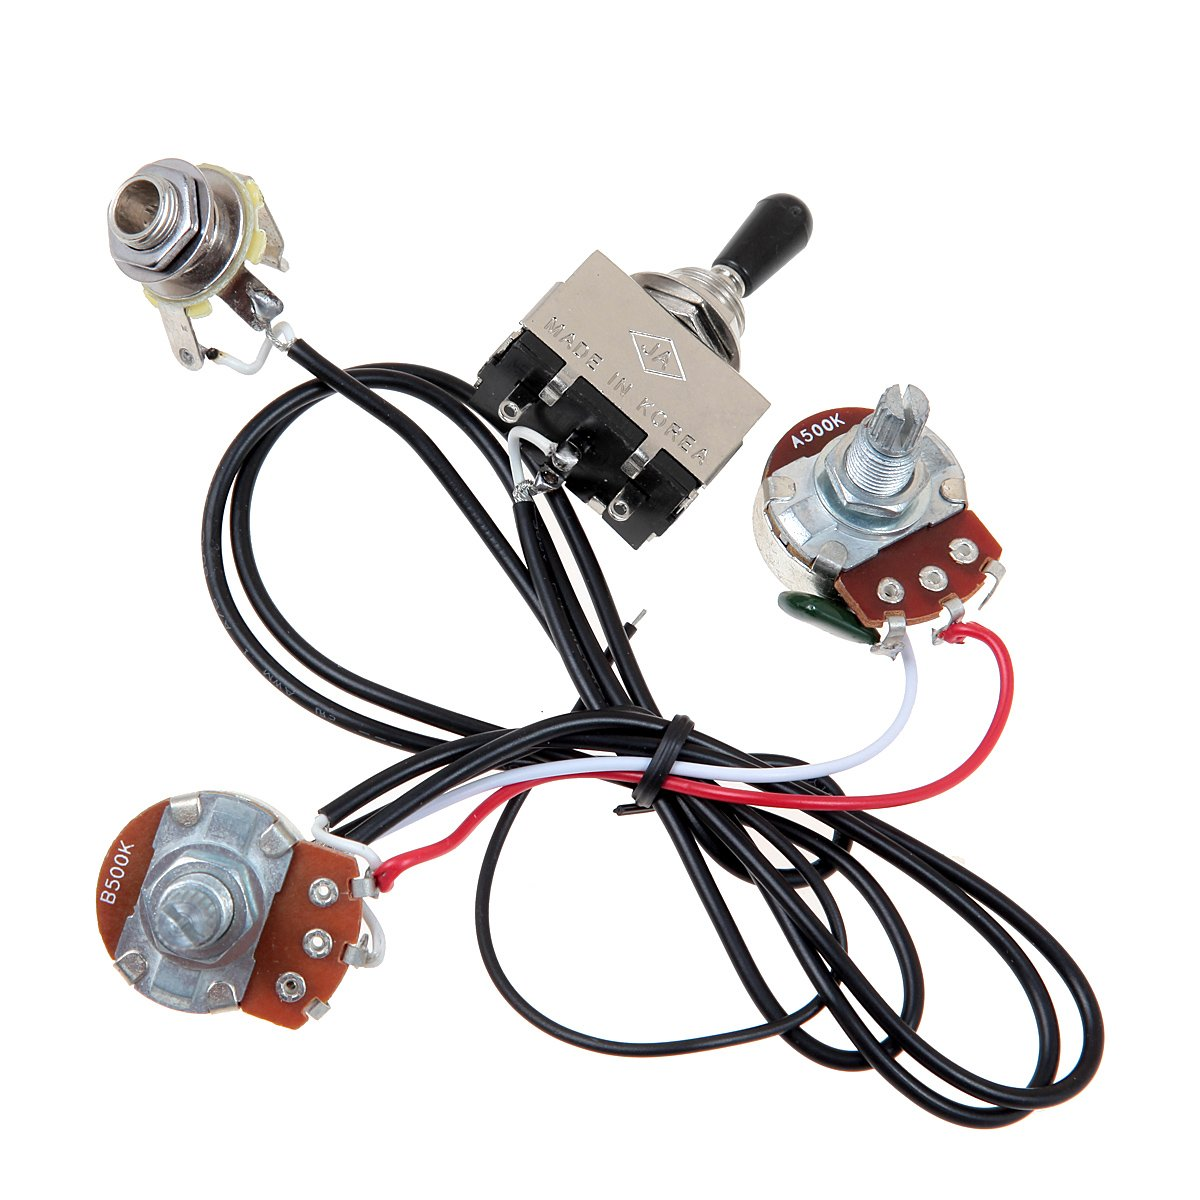 Amazon.com: Kmise Electric Guitar Wiring Harness Prewired Kit 3 Way Toggle  Switch 1 Volume 1 Tone 500K Pots 1 Set: Musical Instruments